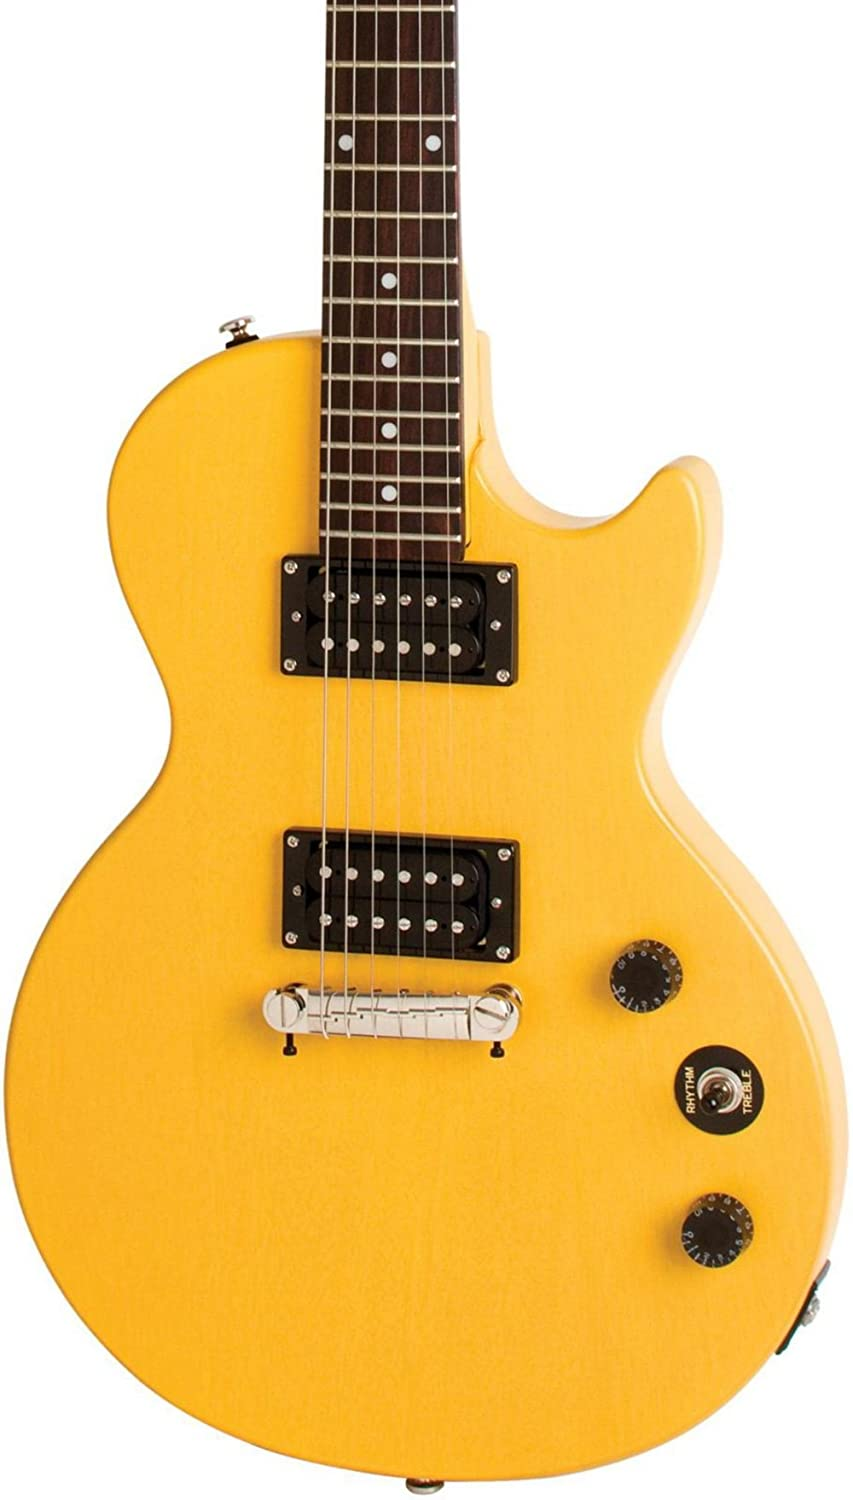 Limited Edition Epiphone Les Paul Guitarra eléctrica de special-i Worn TV Amarillo: Amazon.es: Instrumentos musicales